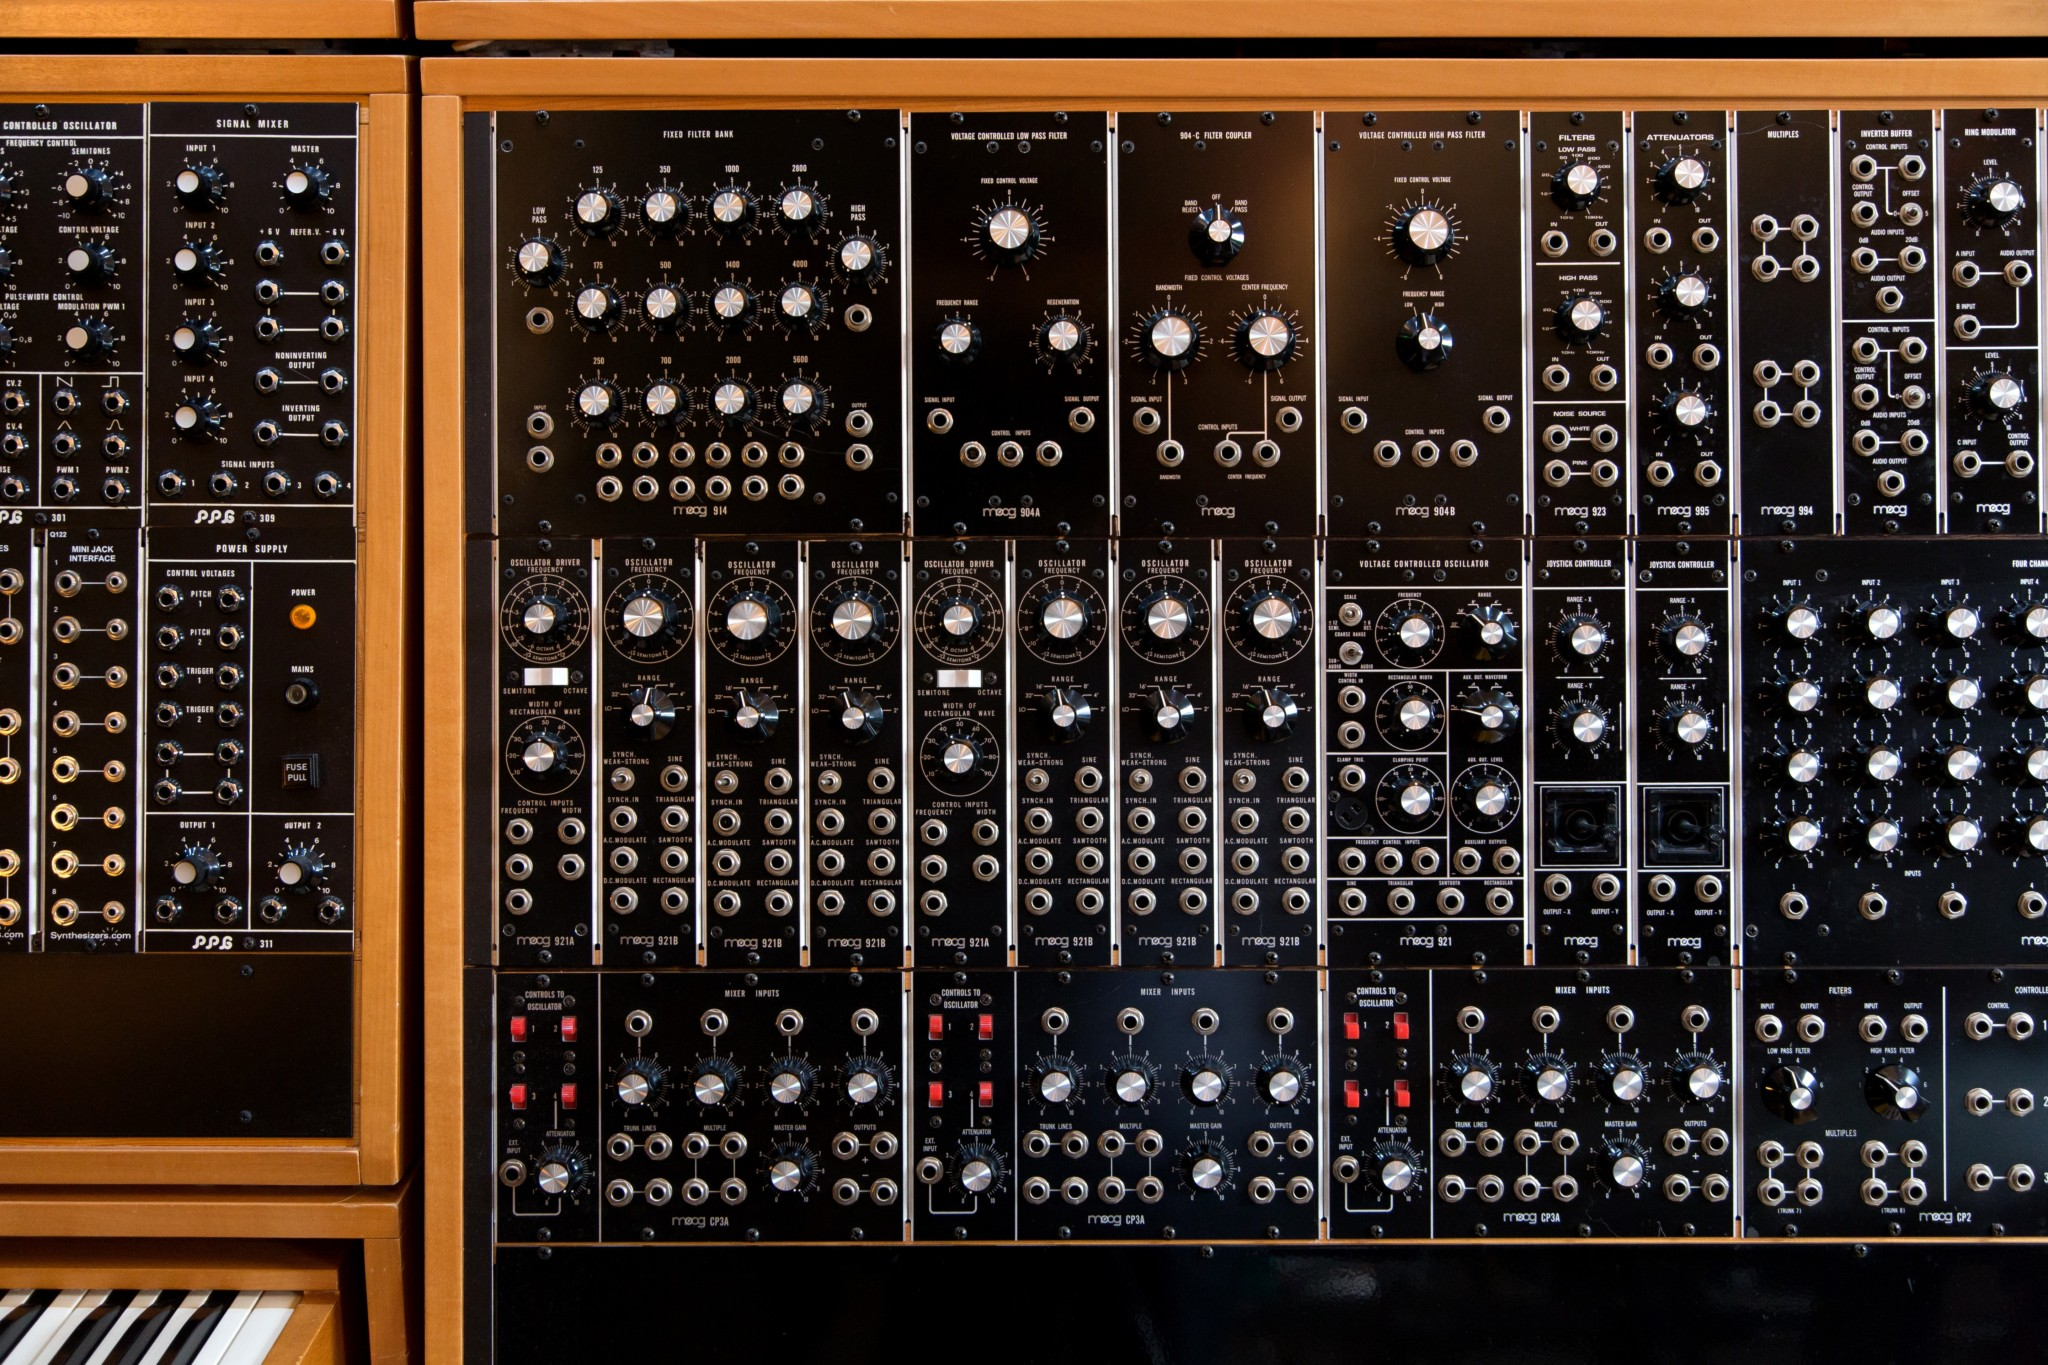 Big Modular Synth 018